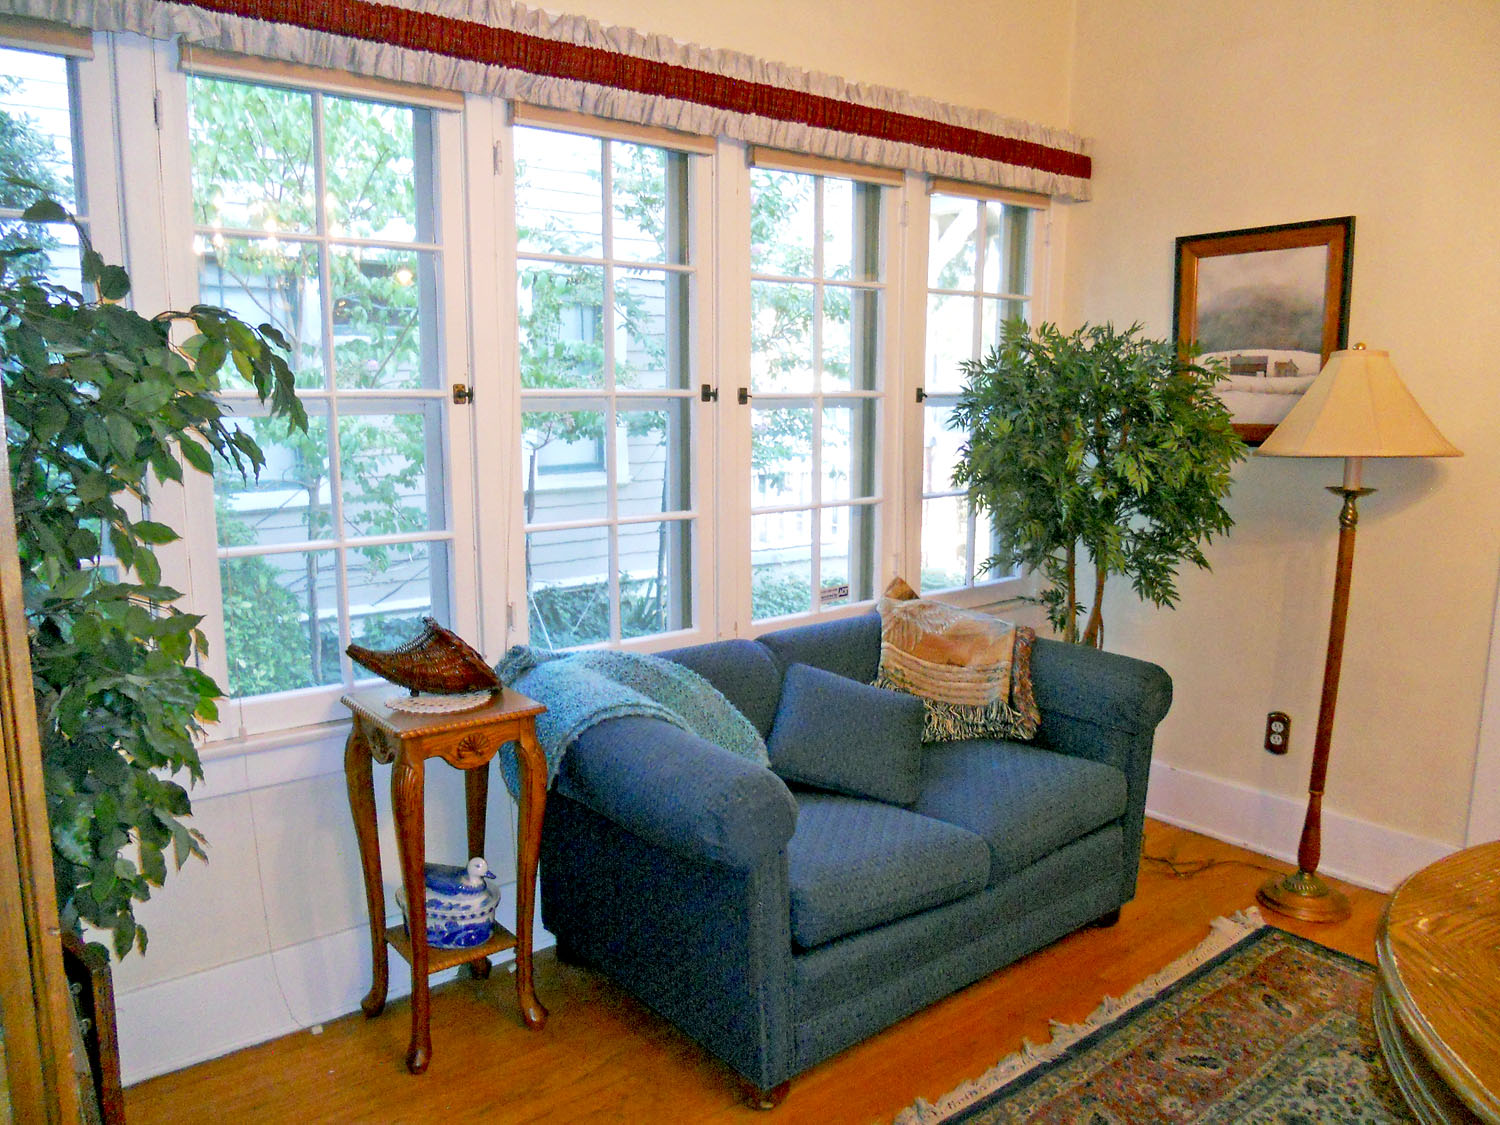 Alternate view of formal dining room with bank of original windows in beautiful condition that welcome the natural light.